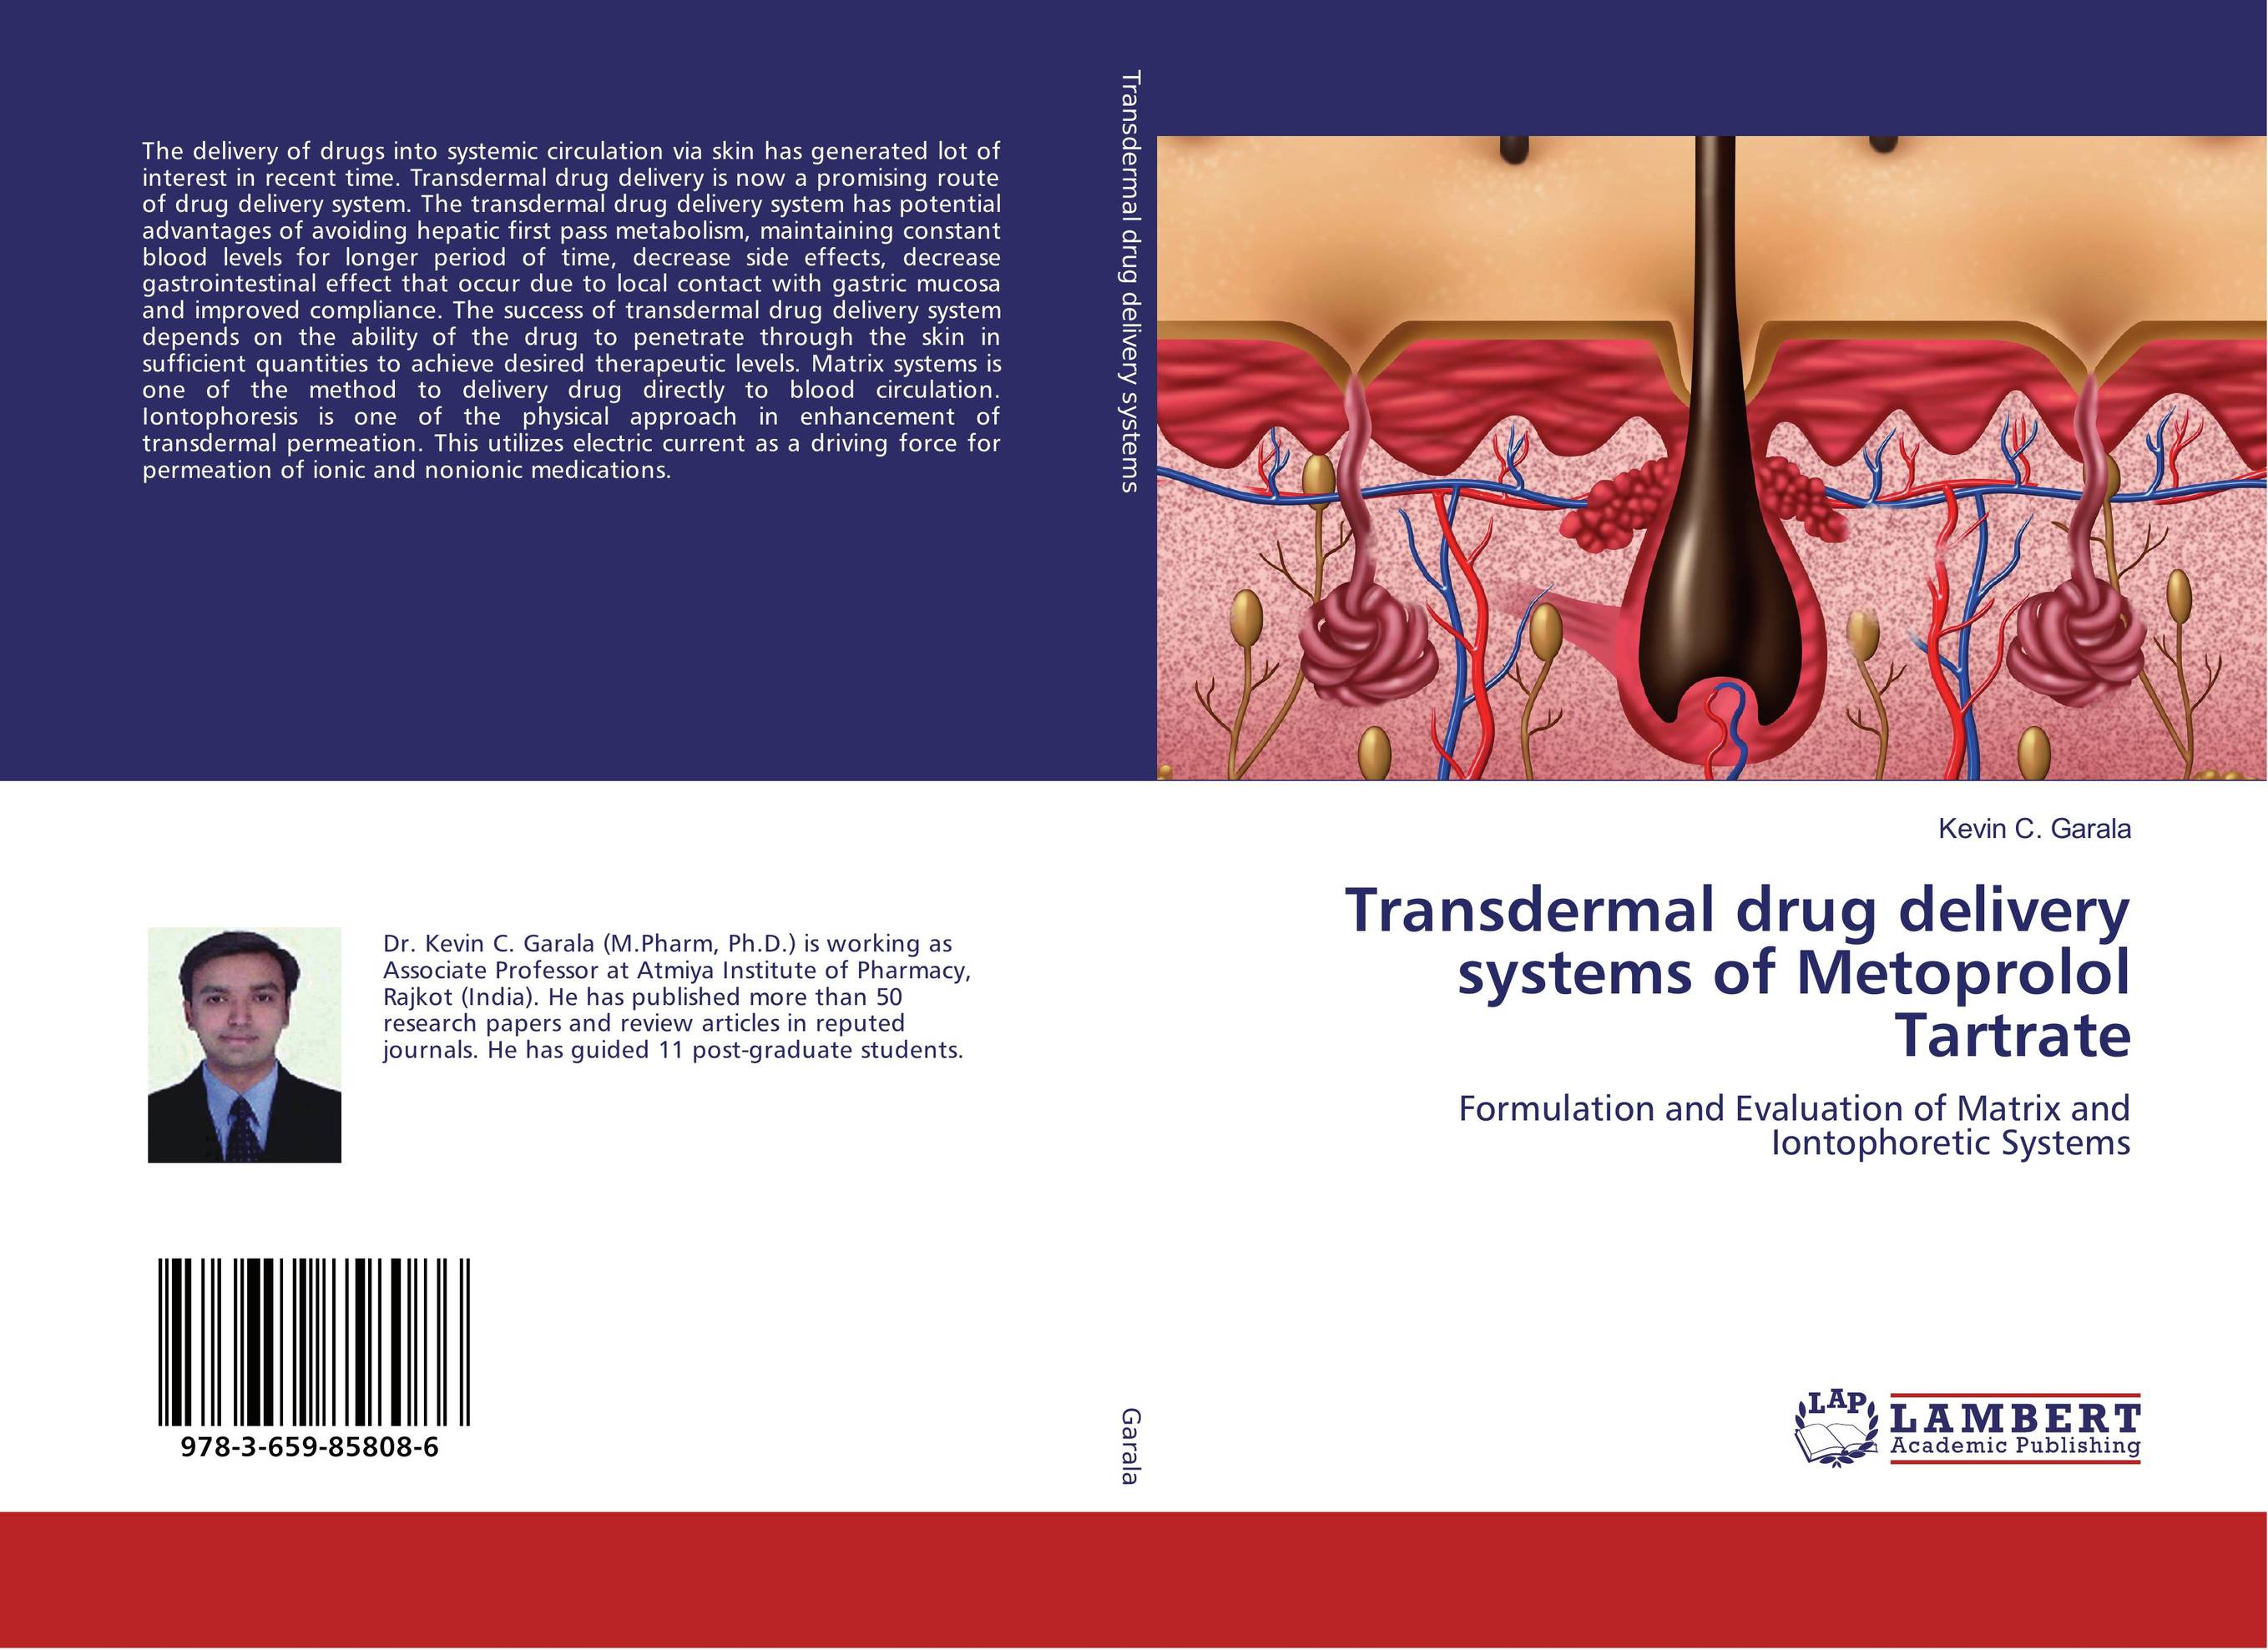 Transdermal drug delivery systems of Metoprolol Tartrate atamjit singh pal paramjit kaur khinda and amarjit singh gill local drug delivery from concept to clinical applications